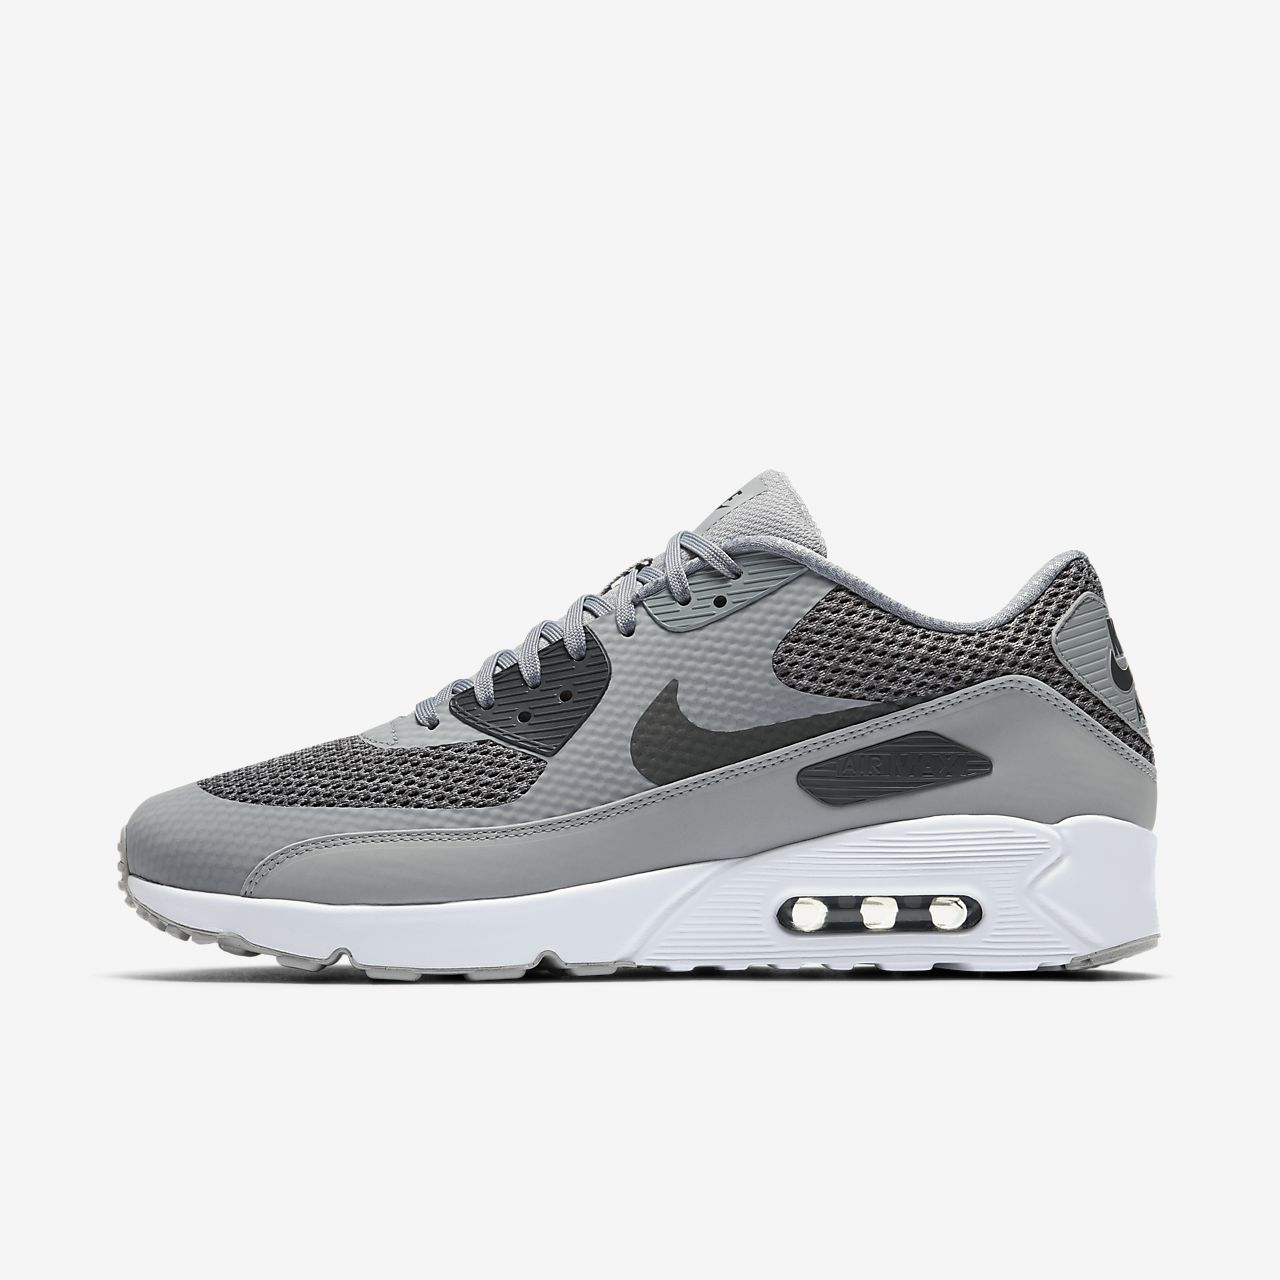 Nike Air Max 90 Ultra 2.0 Essential Mens Shoe